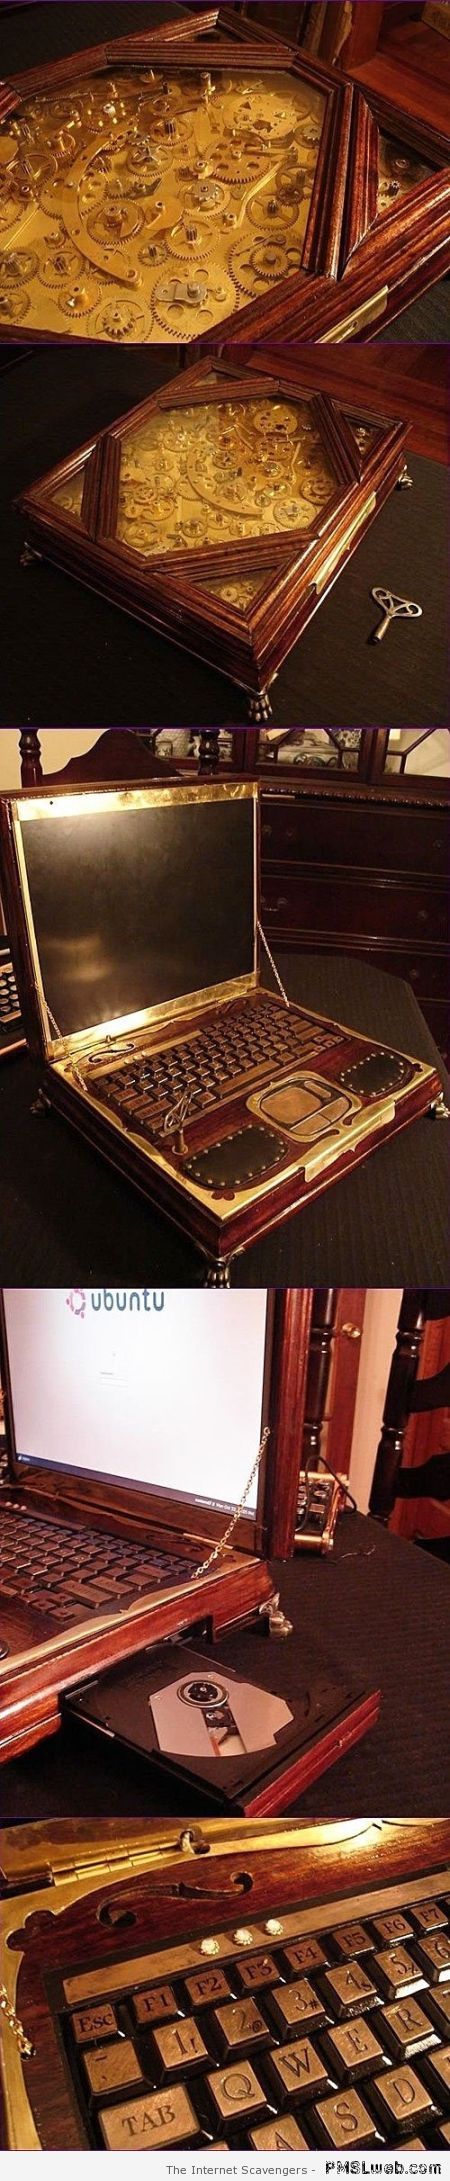 Amazing wooden laptop at PMSLweb.com